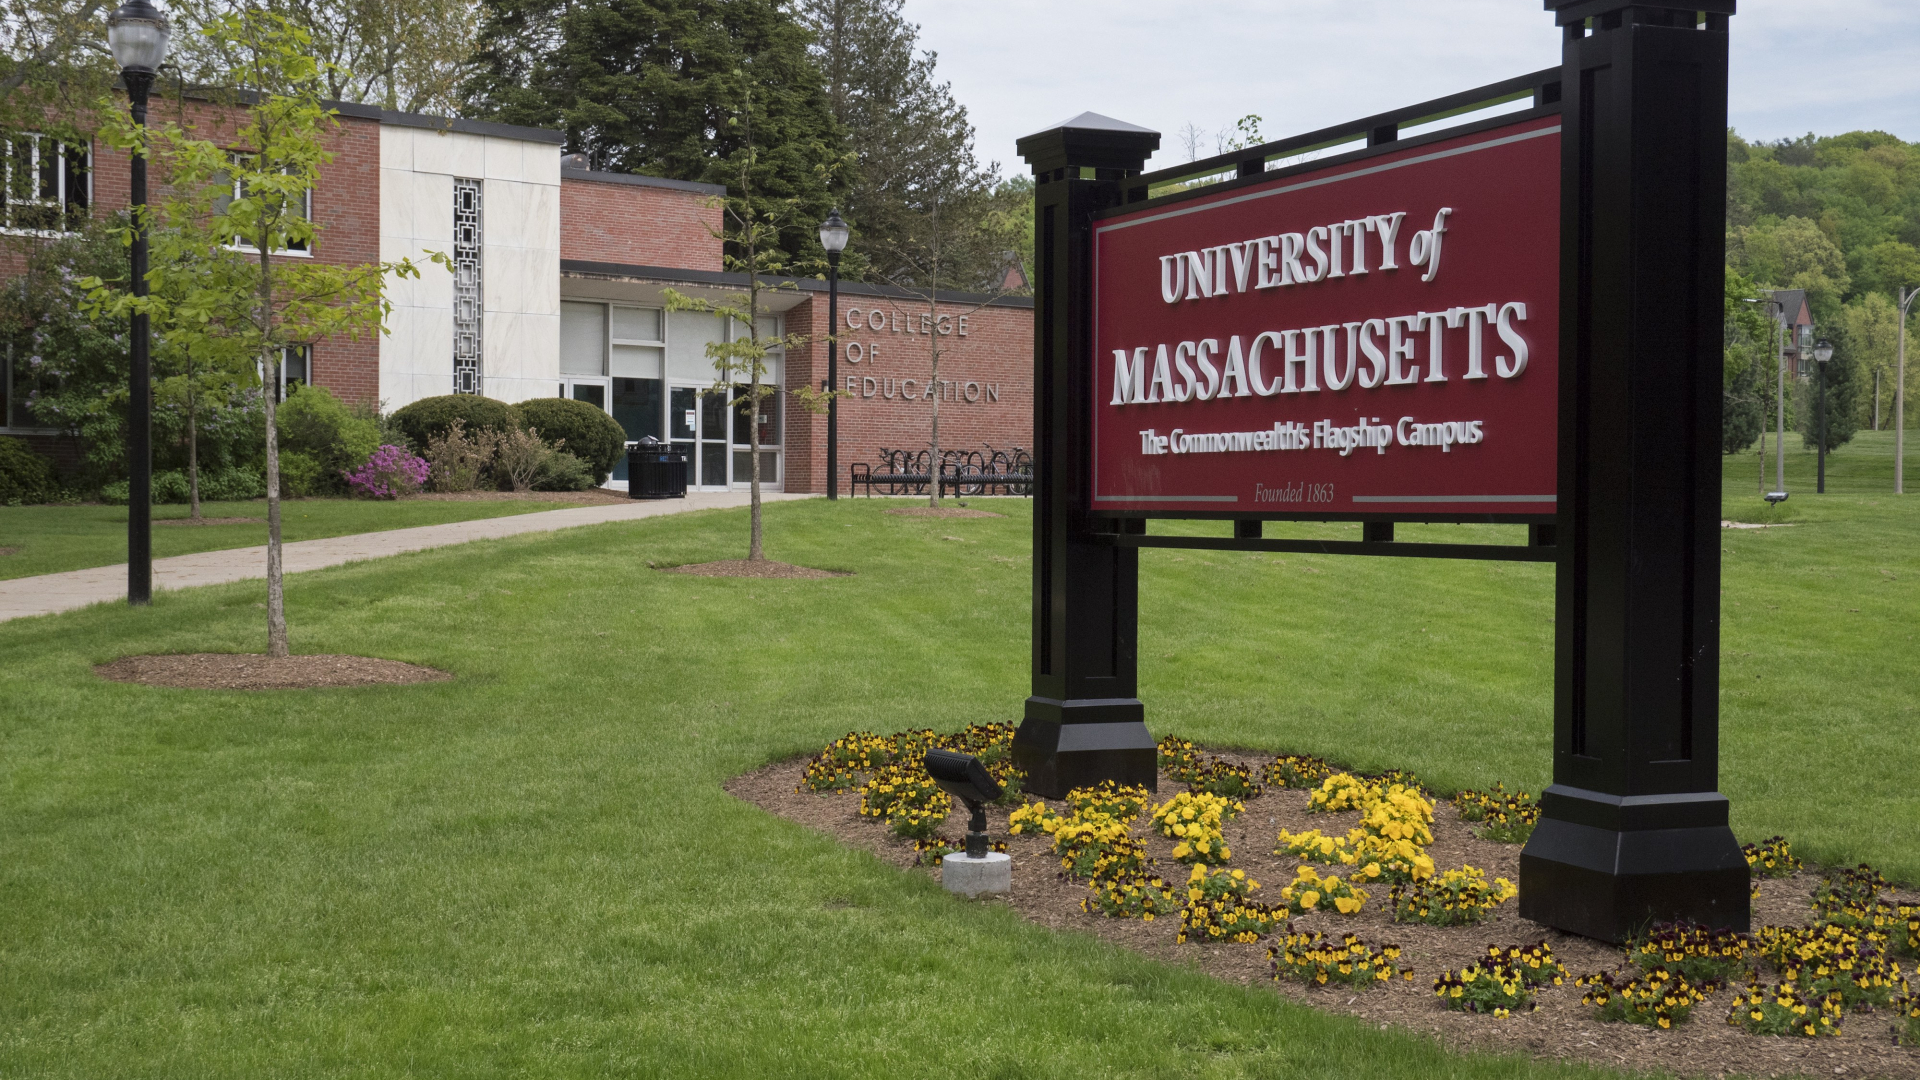 College of Education building with UMass Amherst sign